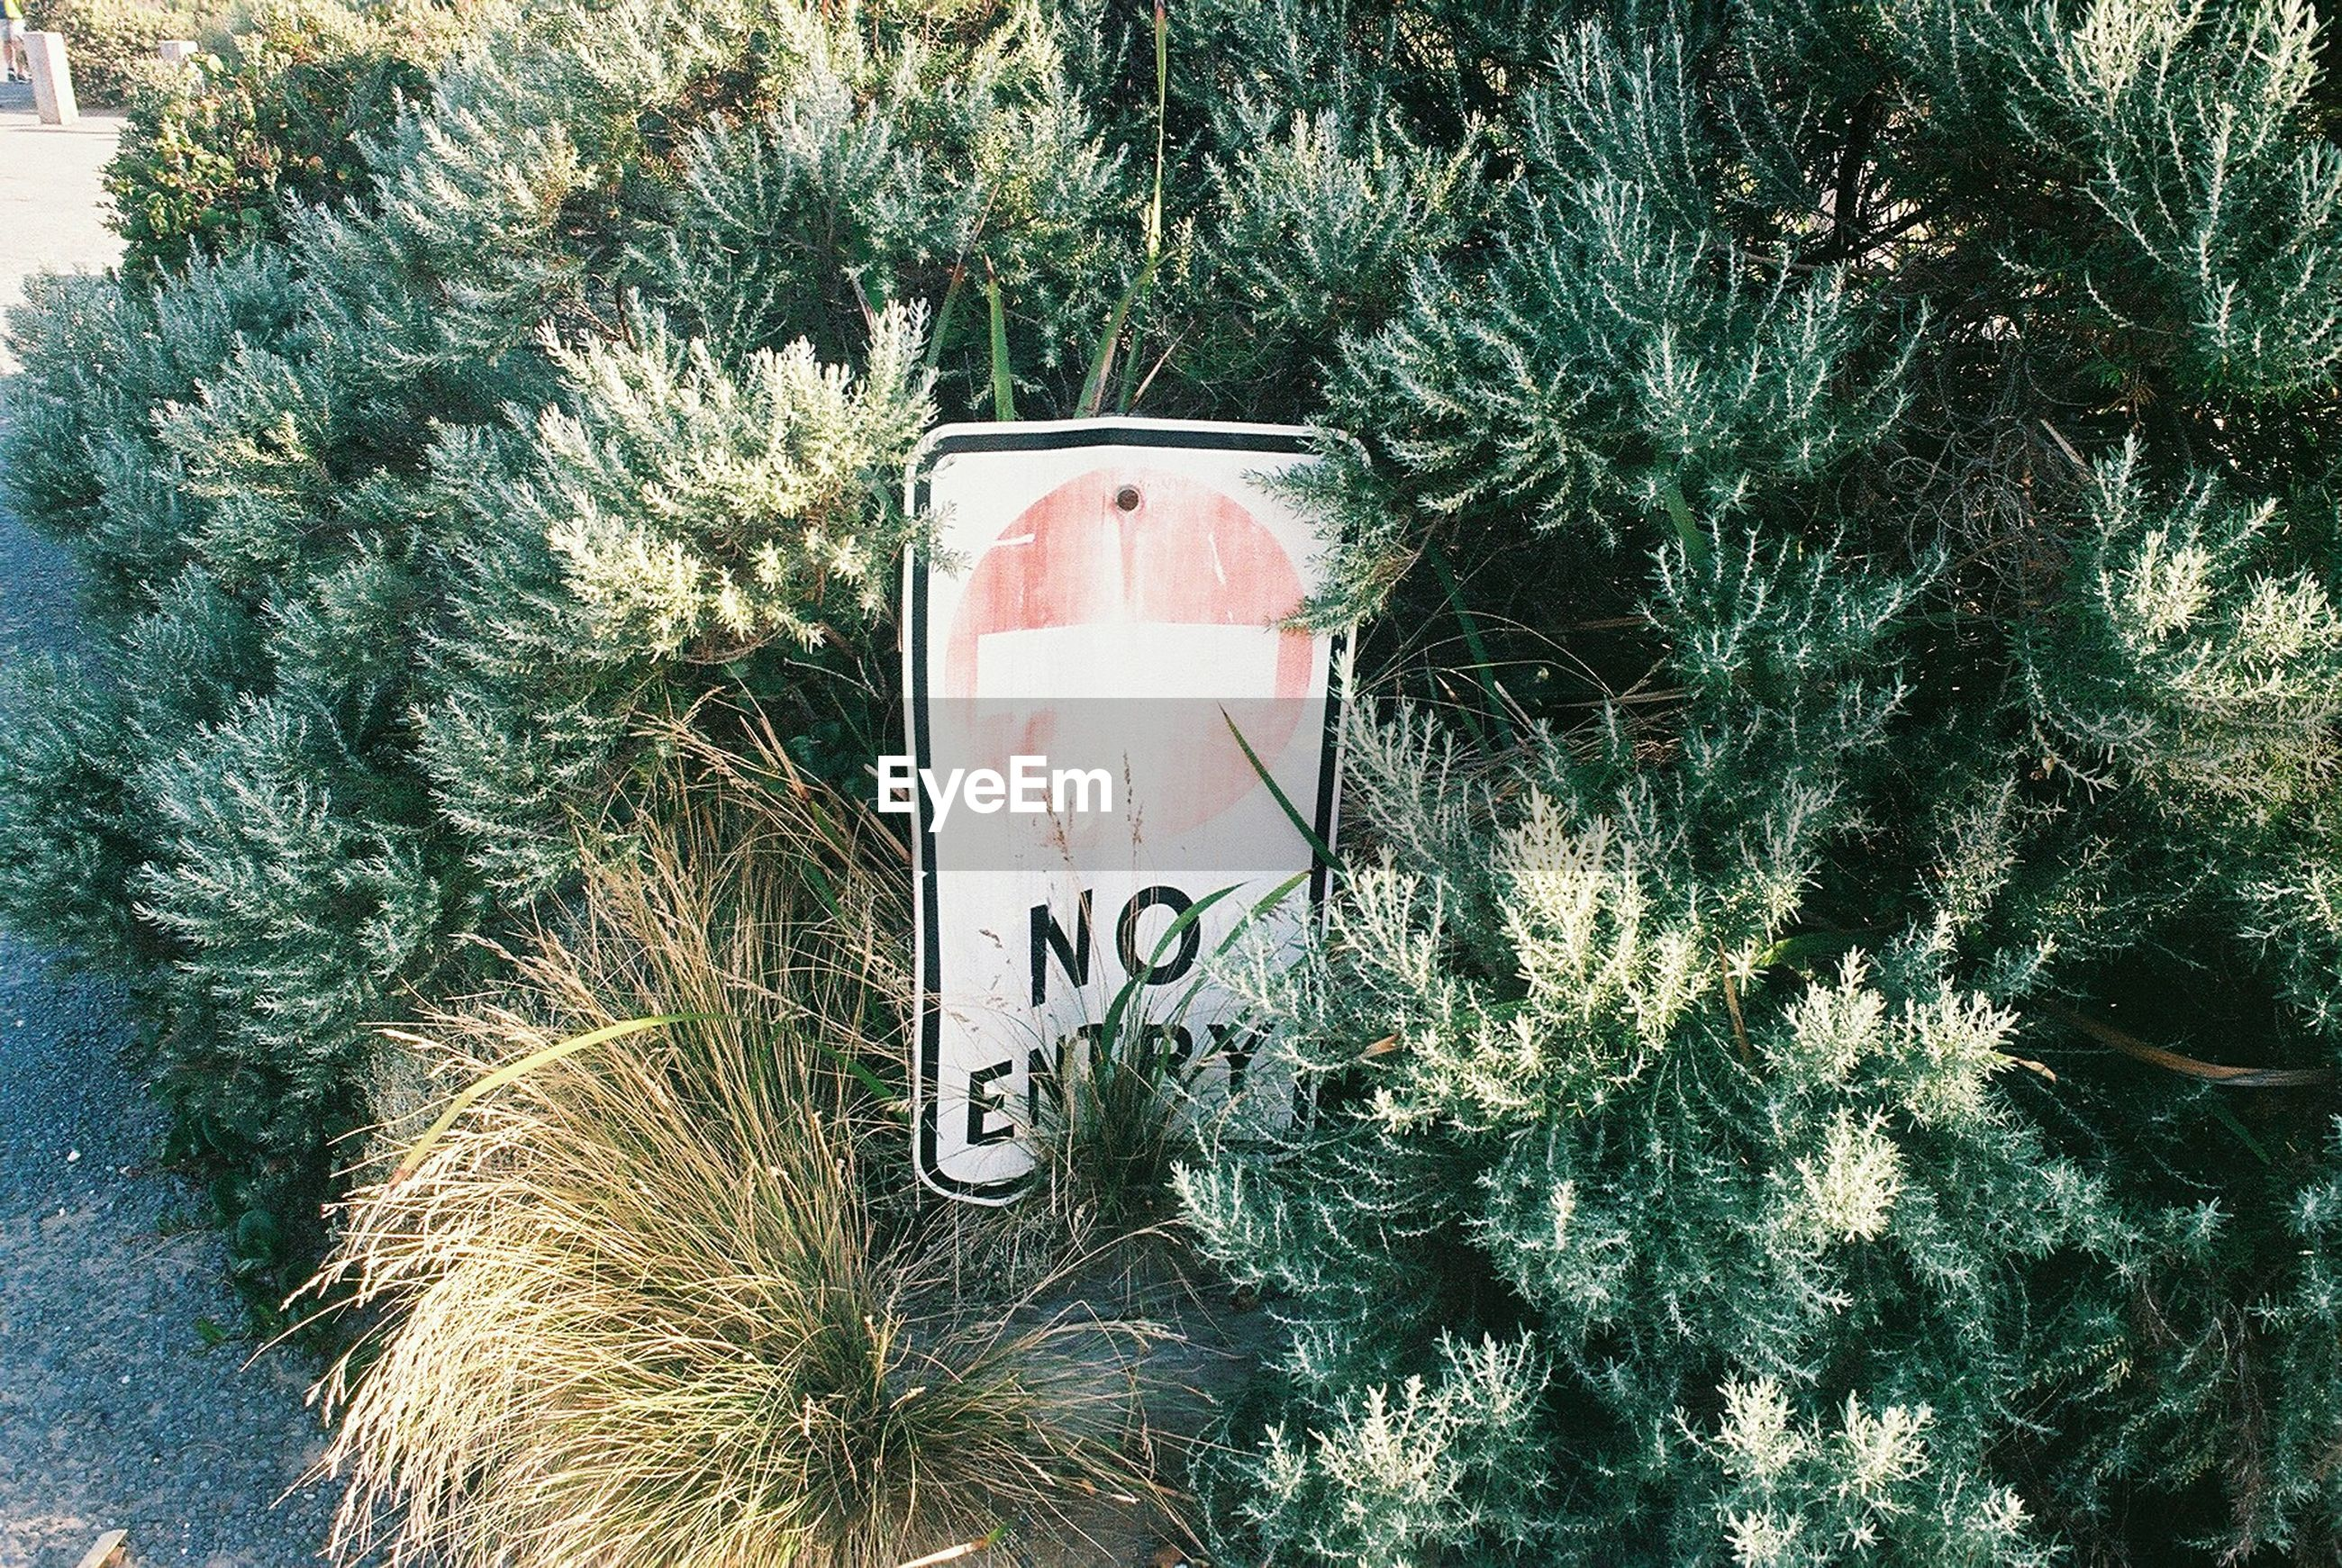 High angle view of do not enter sign on plants